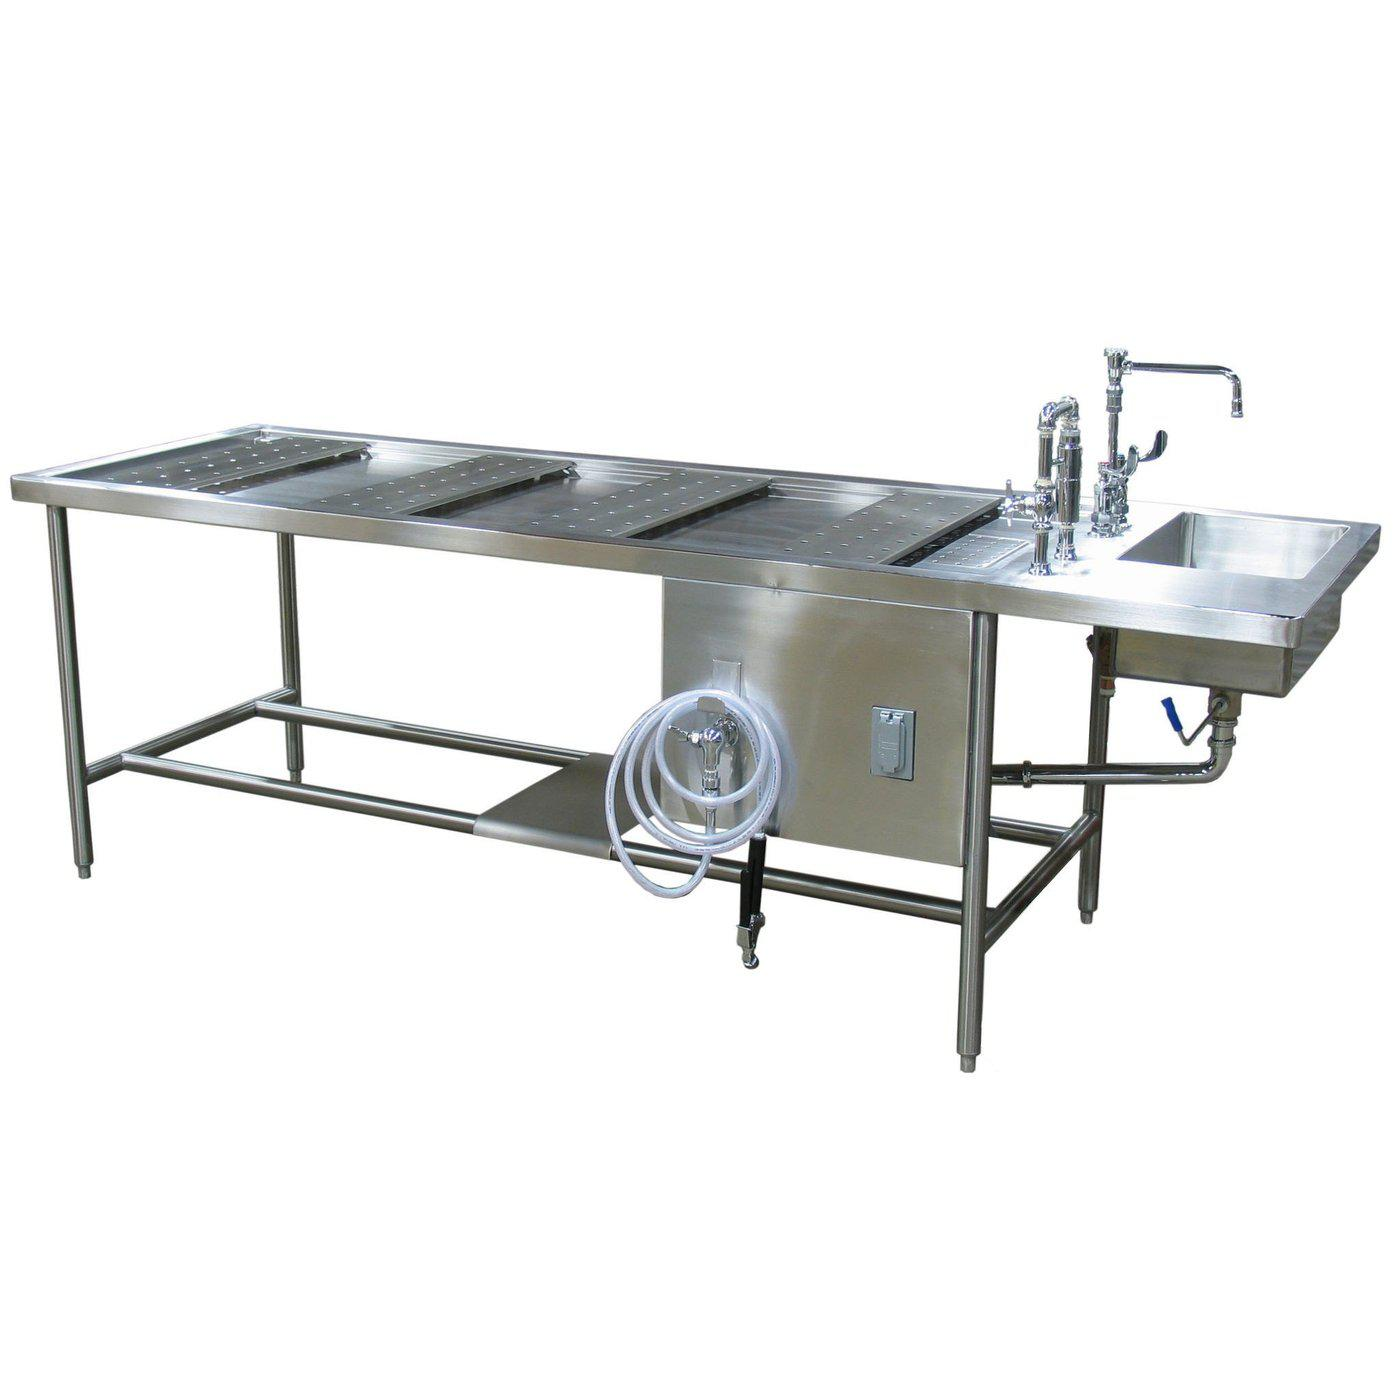 Standard Autopsy Table-Pedestal Autopsy Tables-Mortech Manufacturing Company Inc. Quality Stainless Steel Autopsy, Morgue, Funeral Home, Necropsy, Veterinary / Anatomy, Dissection Equipment and Accessories